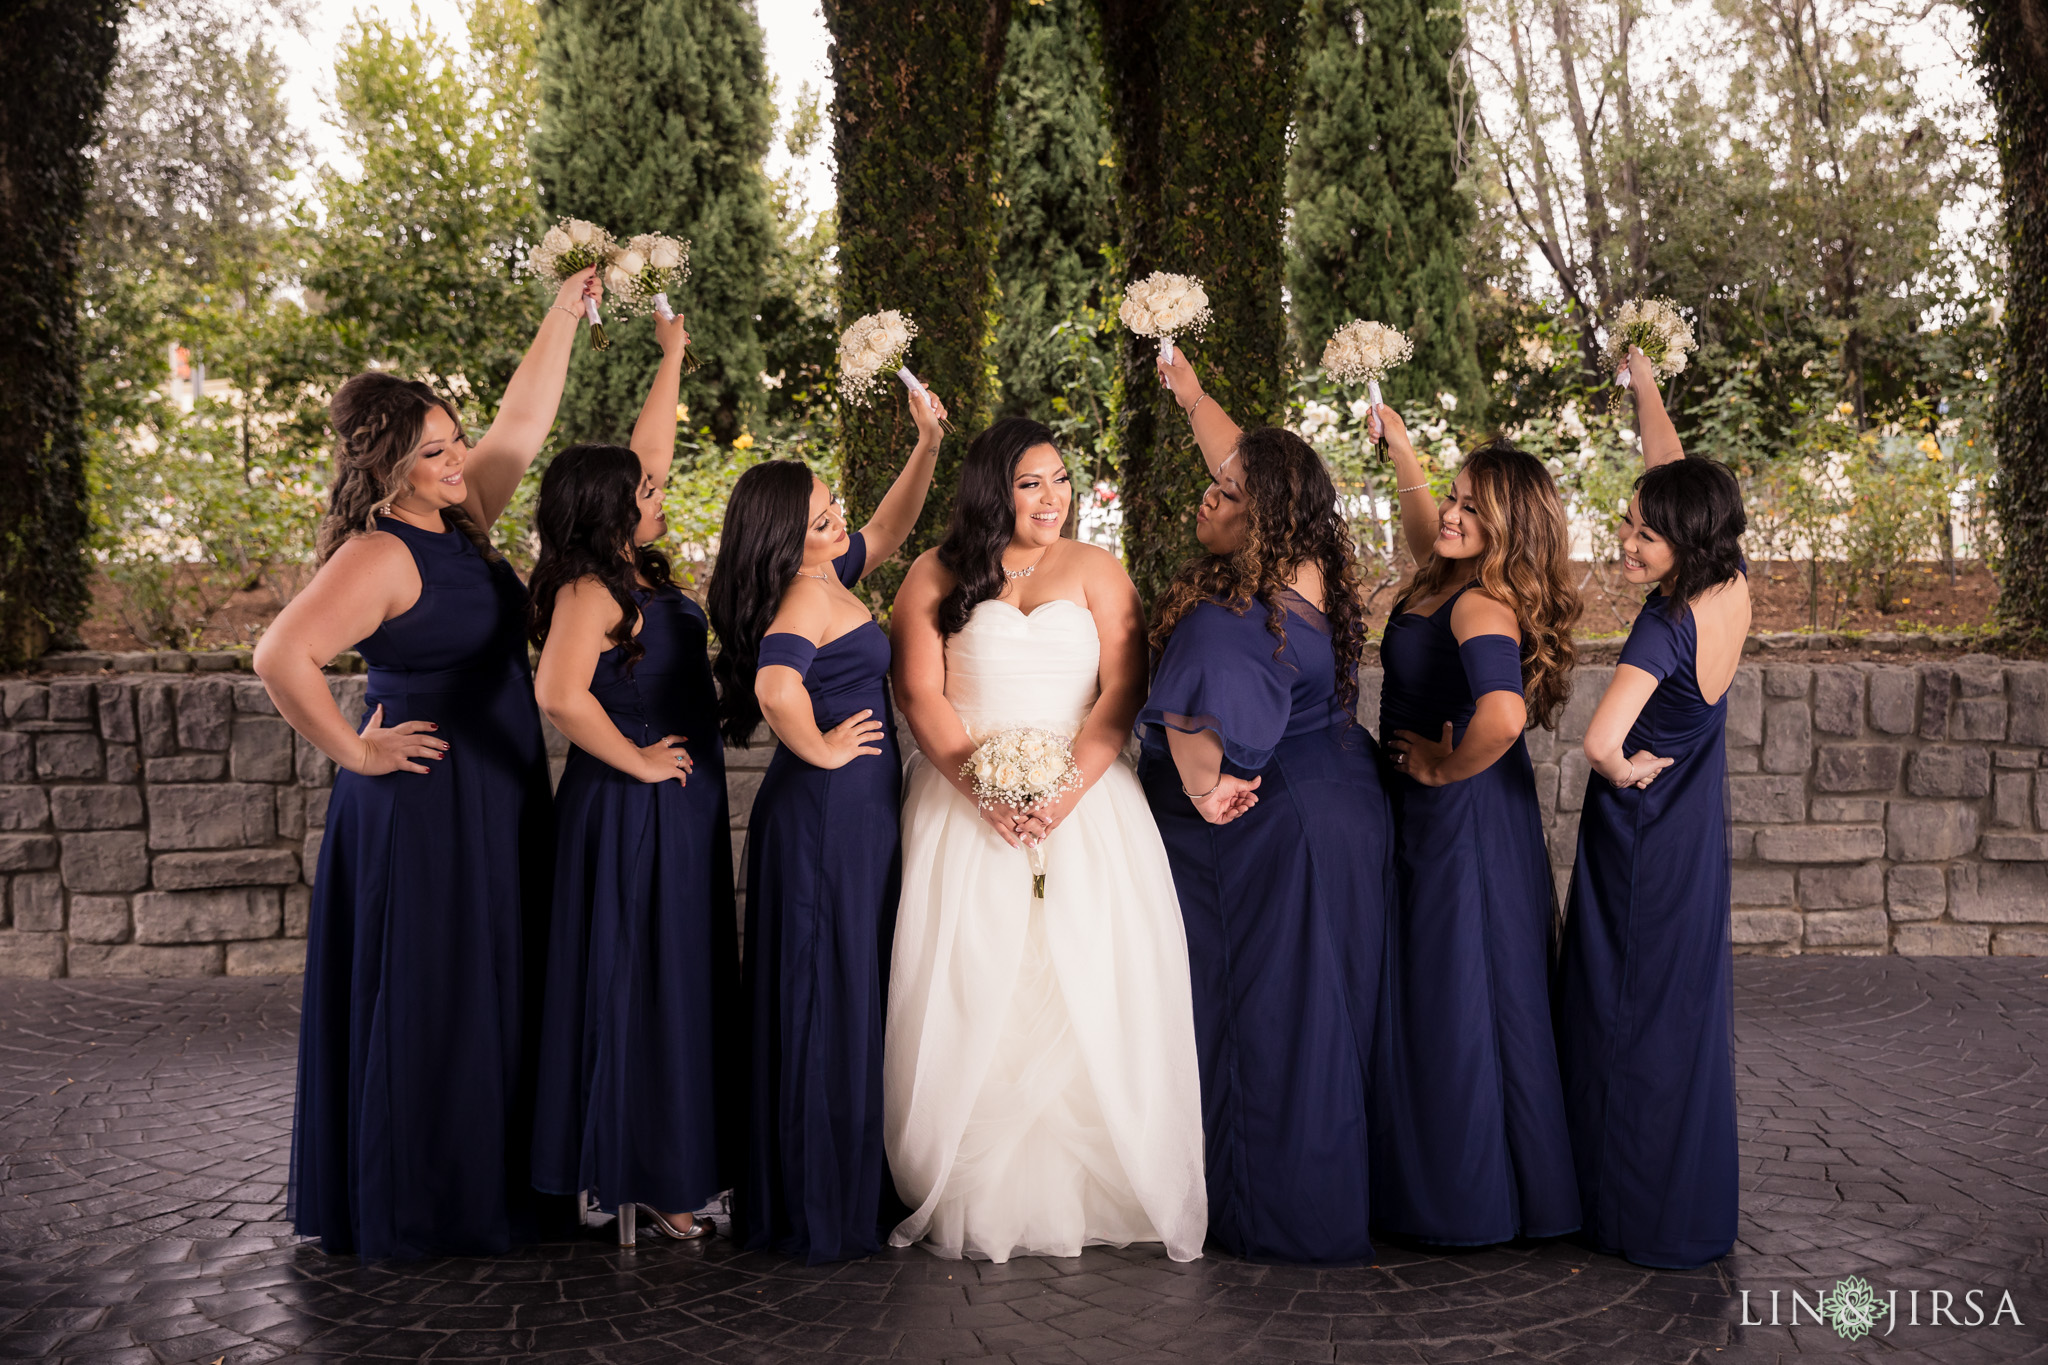 08 turnip rose promenade orange county bride wedding photography